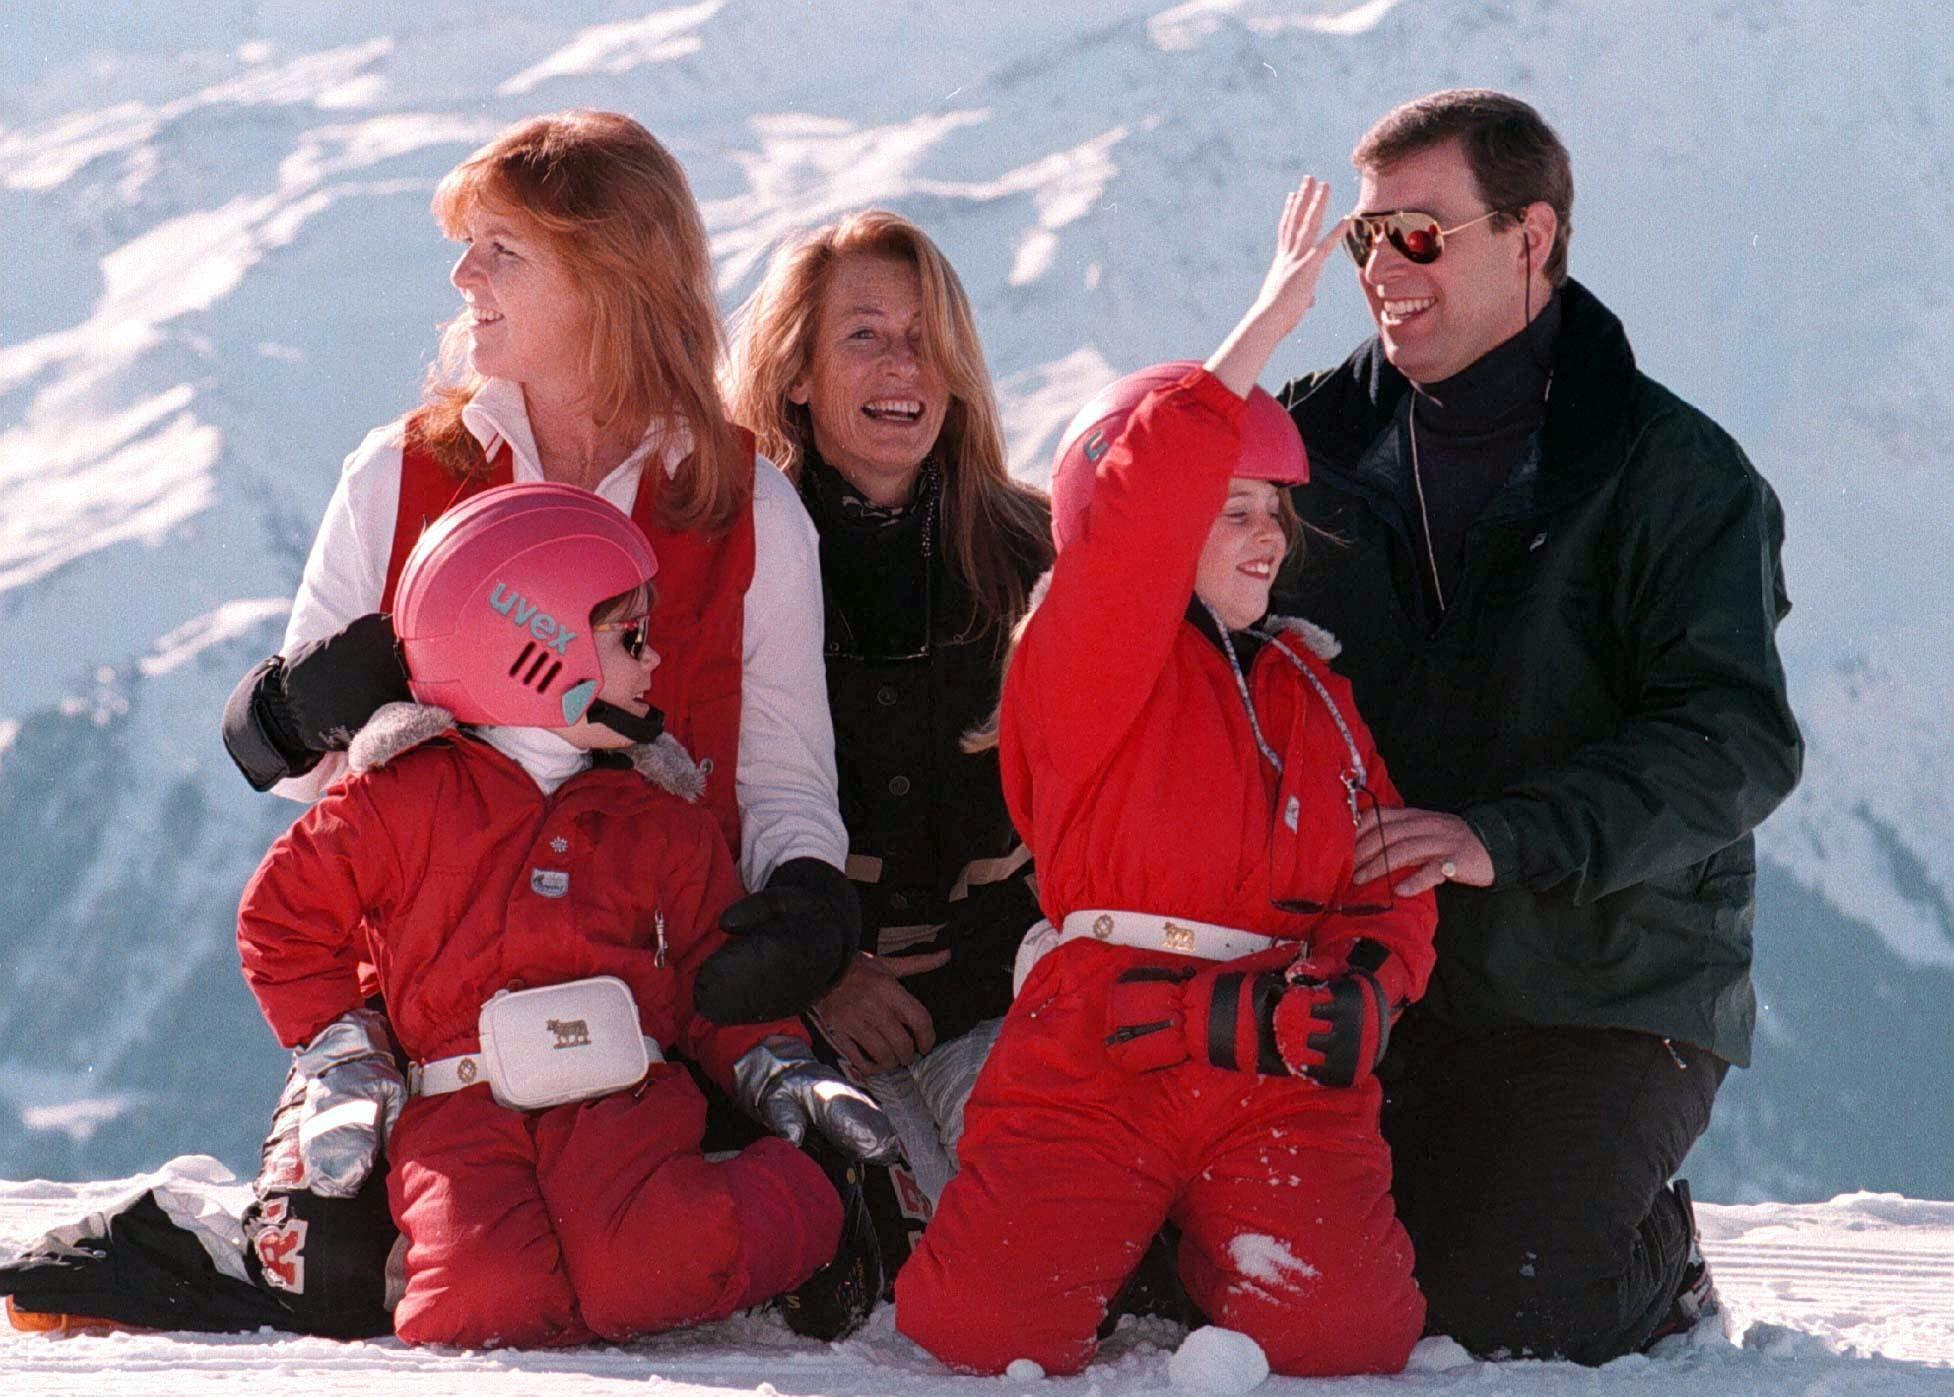 Library file, dated 22/2/97.The Duke and Duchess of York, with their  children Princess's Beatrice (right) and Eugenie, and the mother of the Duchess, Susan Barrantes, during a skiing trip in the Swiss resort of Verbier:  It was announced today (Sunday) that Susan Barrantes has been killed in a car crash in Argentina. See PA story DEATH Barrantes. PHOTOGRAPH BY JOHN STILLWELL/PA.